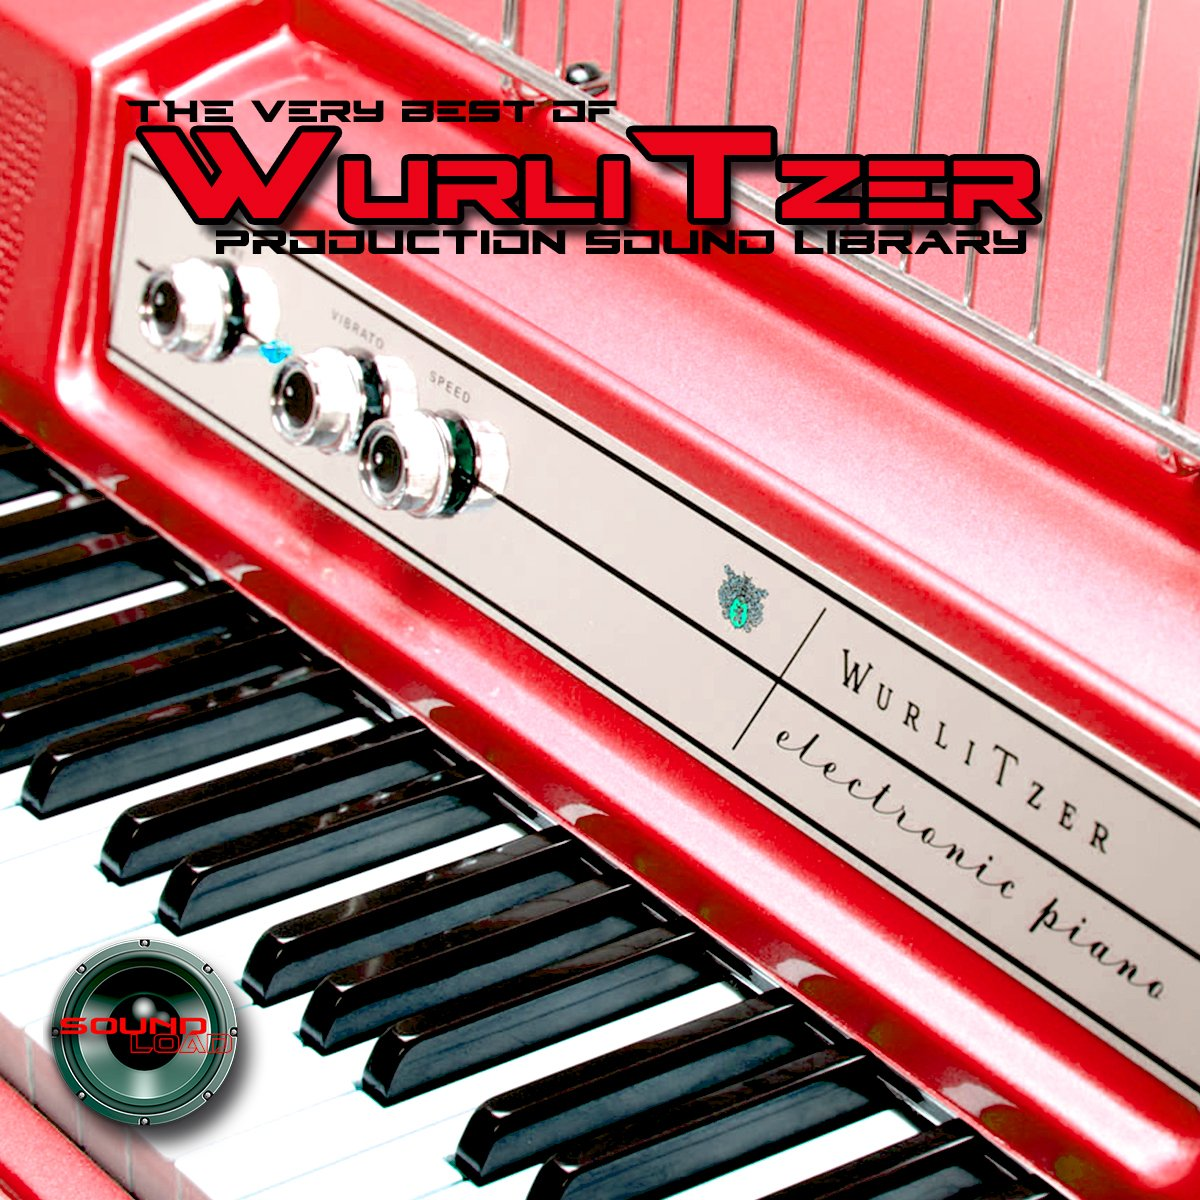 Wurlitzer Electronic Piano - Large unique 24bit WAVE/KONTAKT Multi-Layer Studio Samples Production Library on DVD or download by SoundLoad